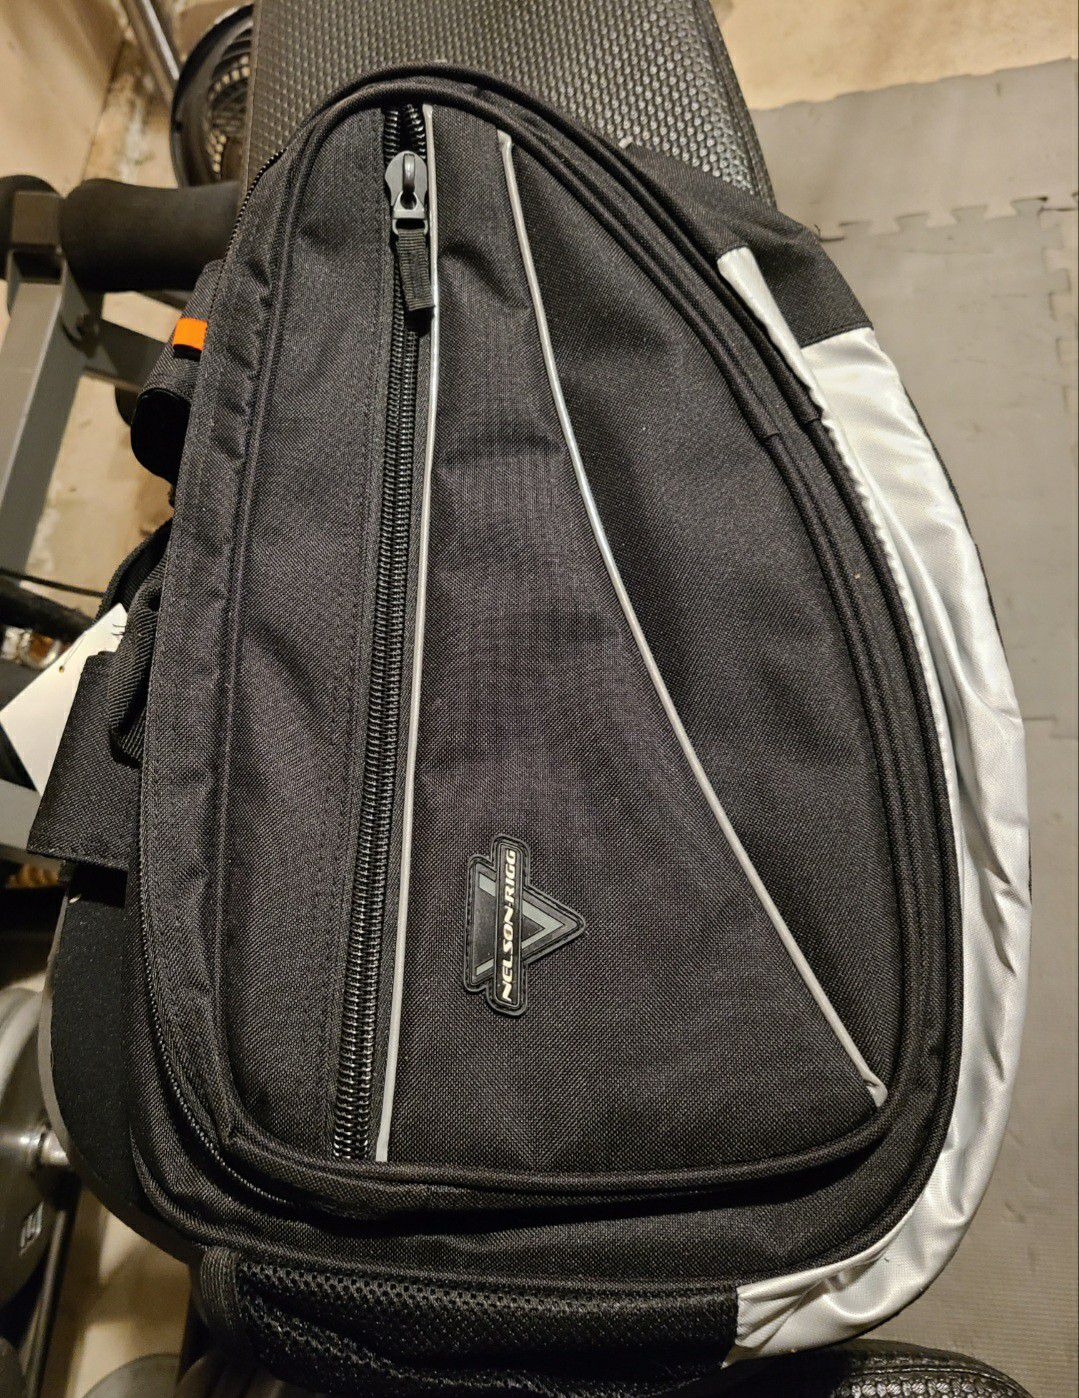 Nelson Rigg Saddle bags